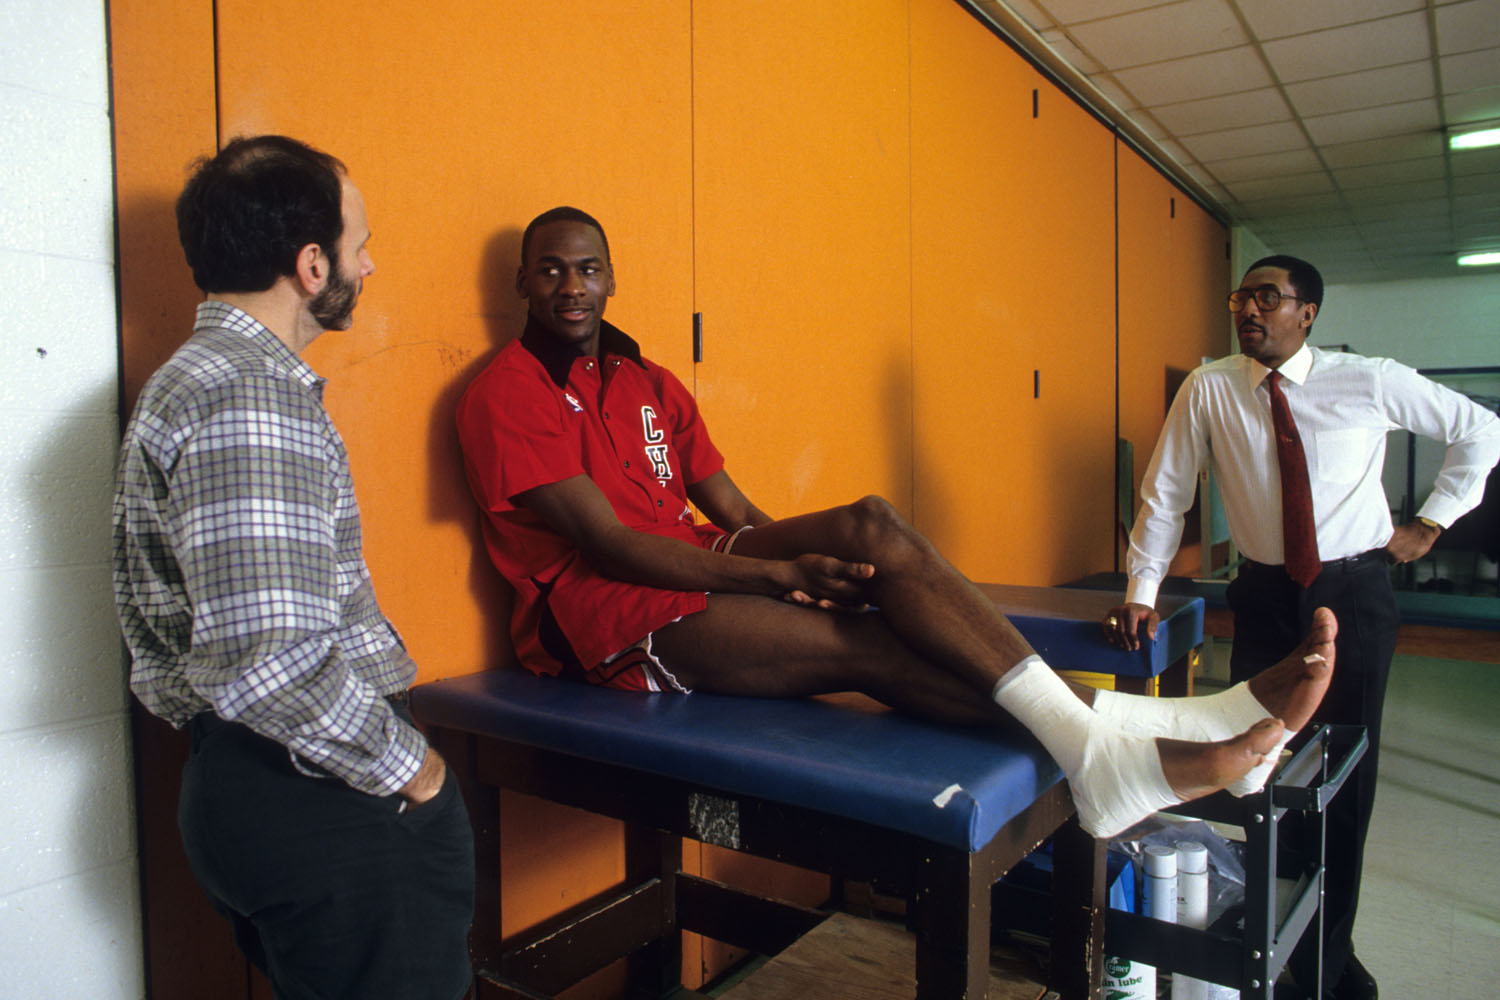 Chicago Bulls guard Michael Jordan on the trainer's table before a game against the Detroit Pistons at the Pontiac Silverdome in 1987.